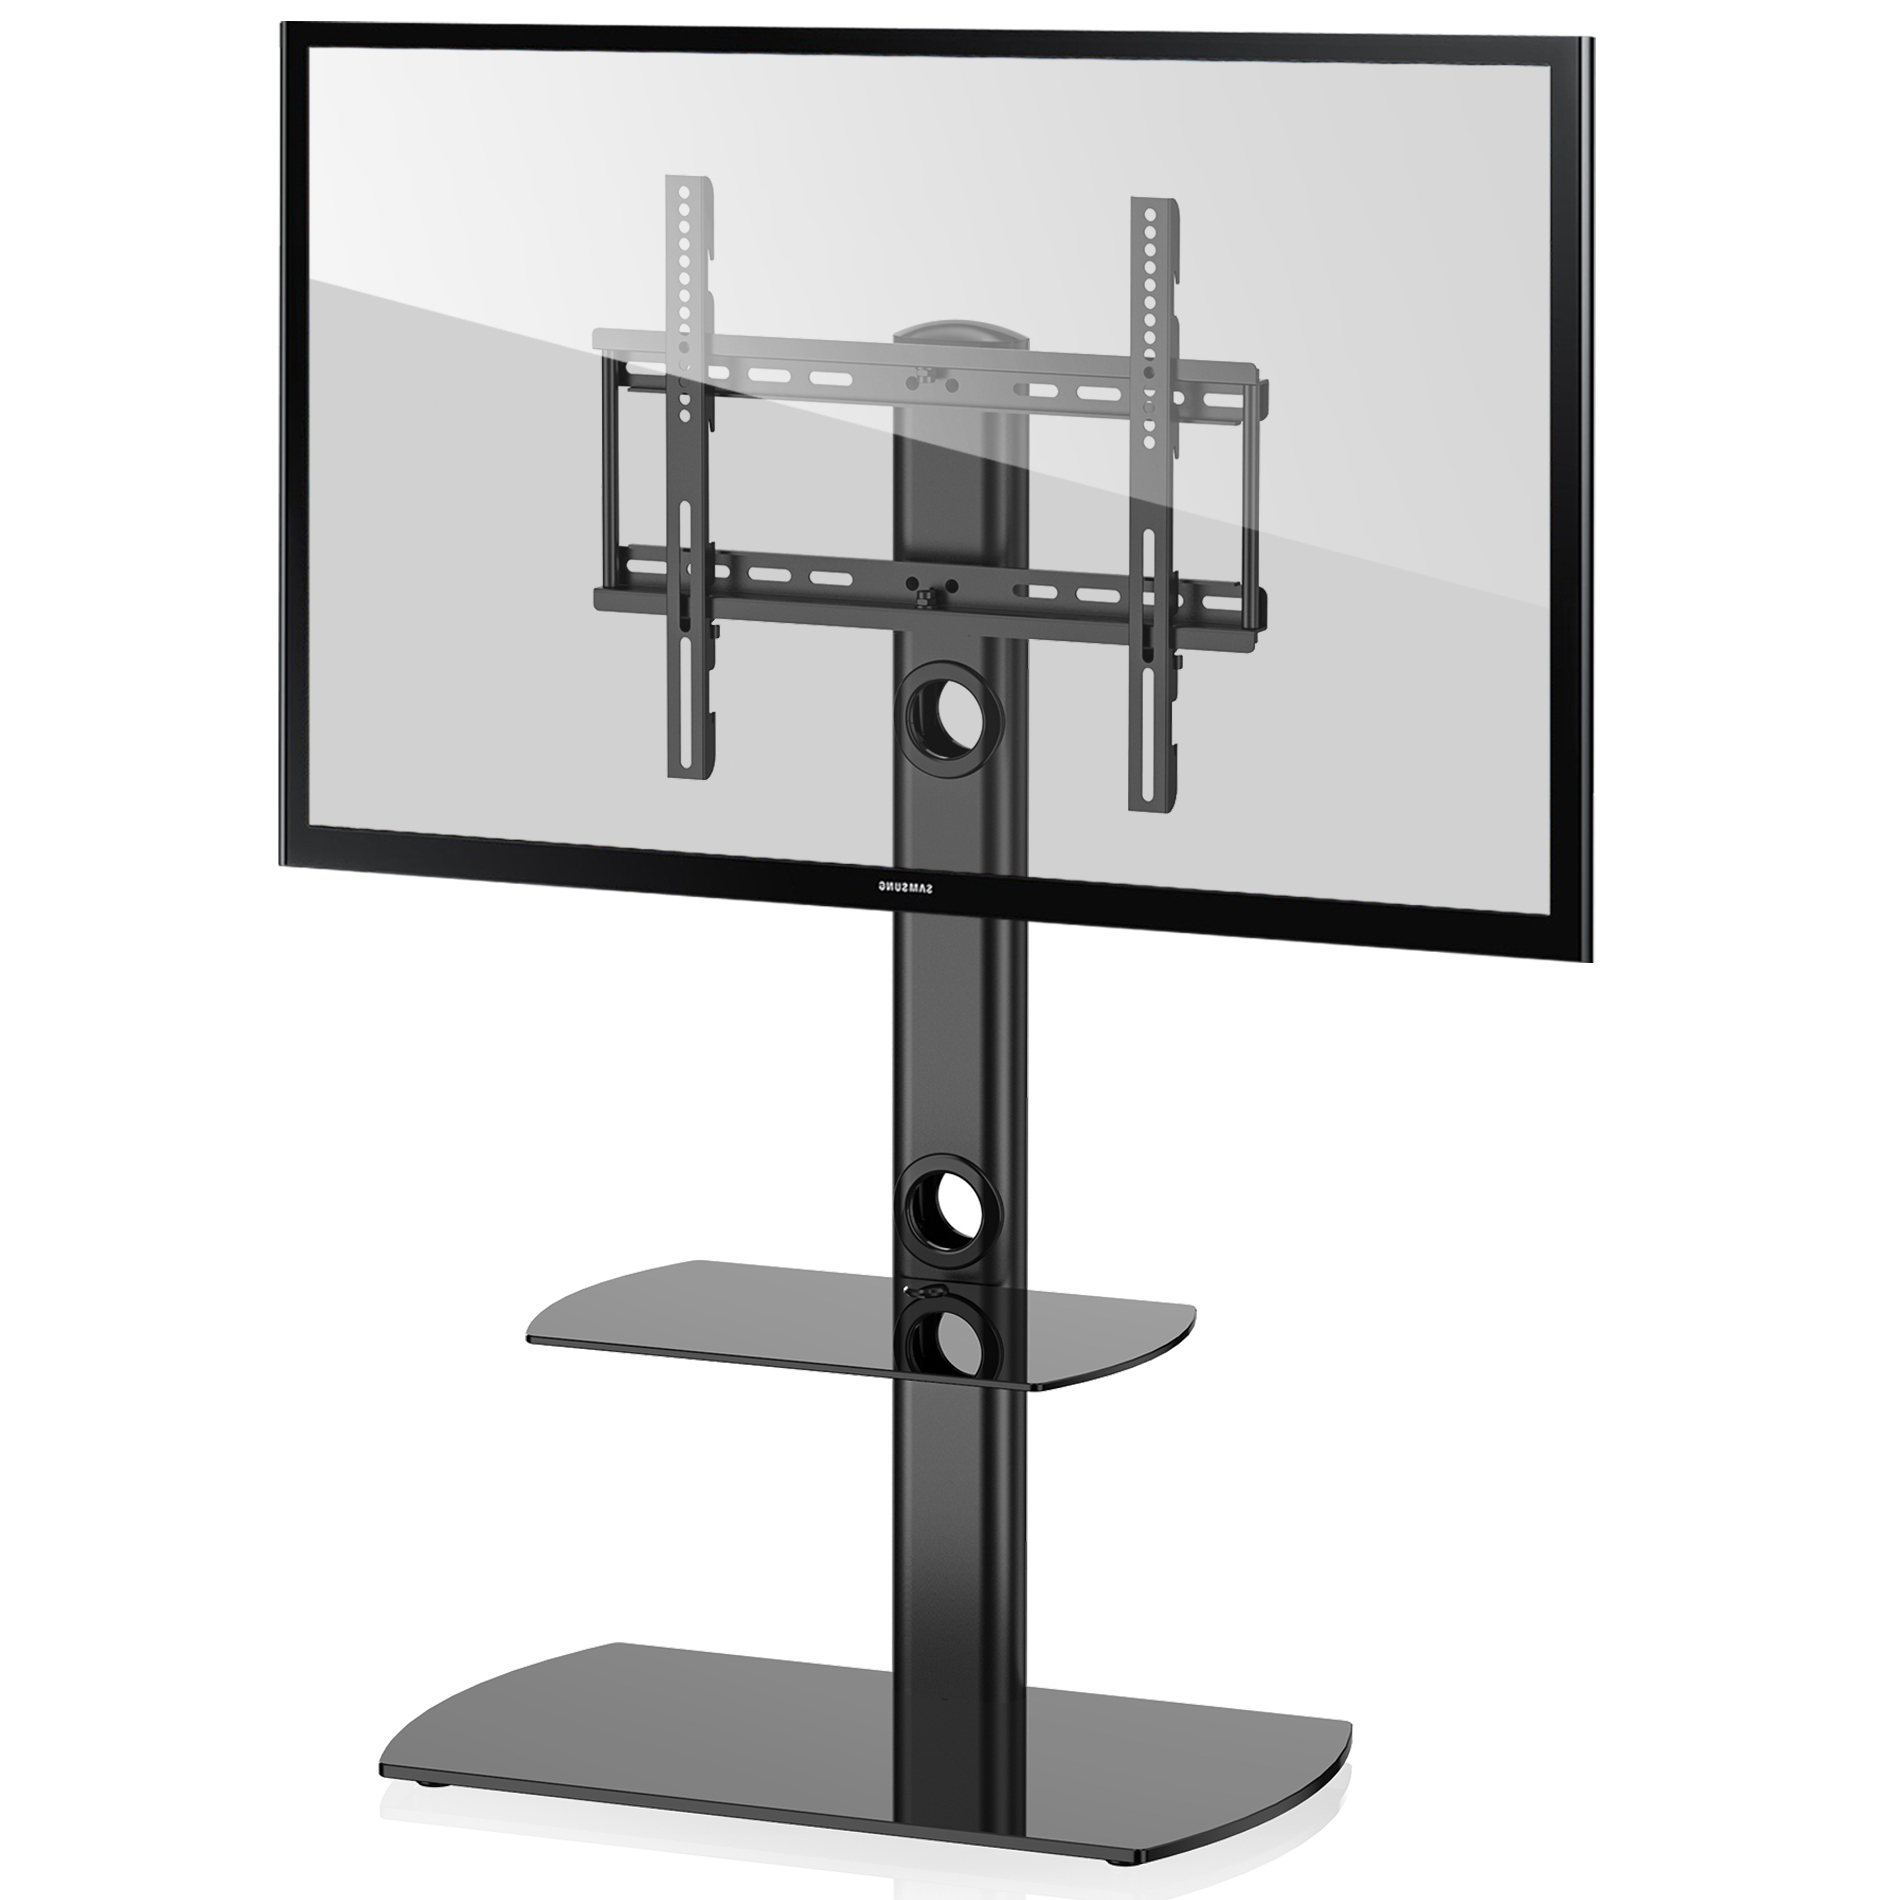 Fitueyes Universal Floor Tv Stand With Swivel Mount Height Pertaining To Modern Floor Tv Stands With Swivel Metal Mount (View 12 of 20)